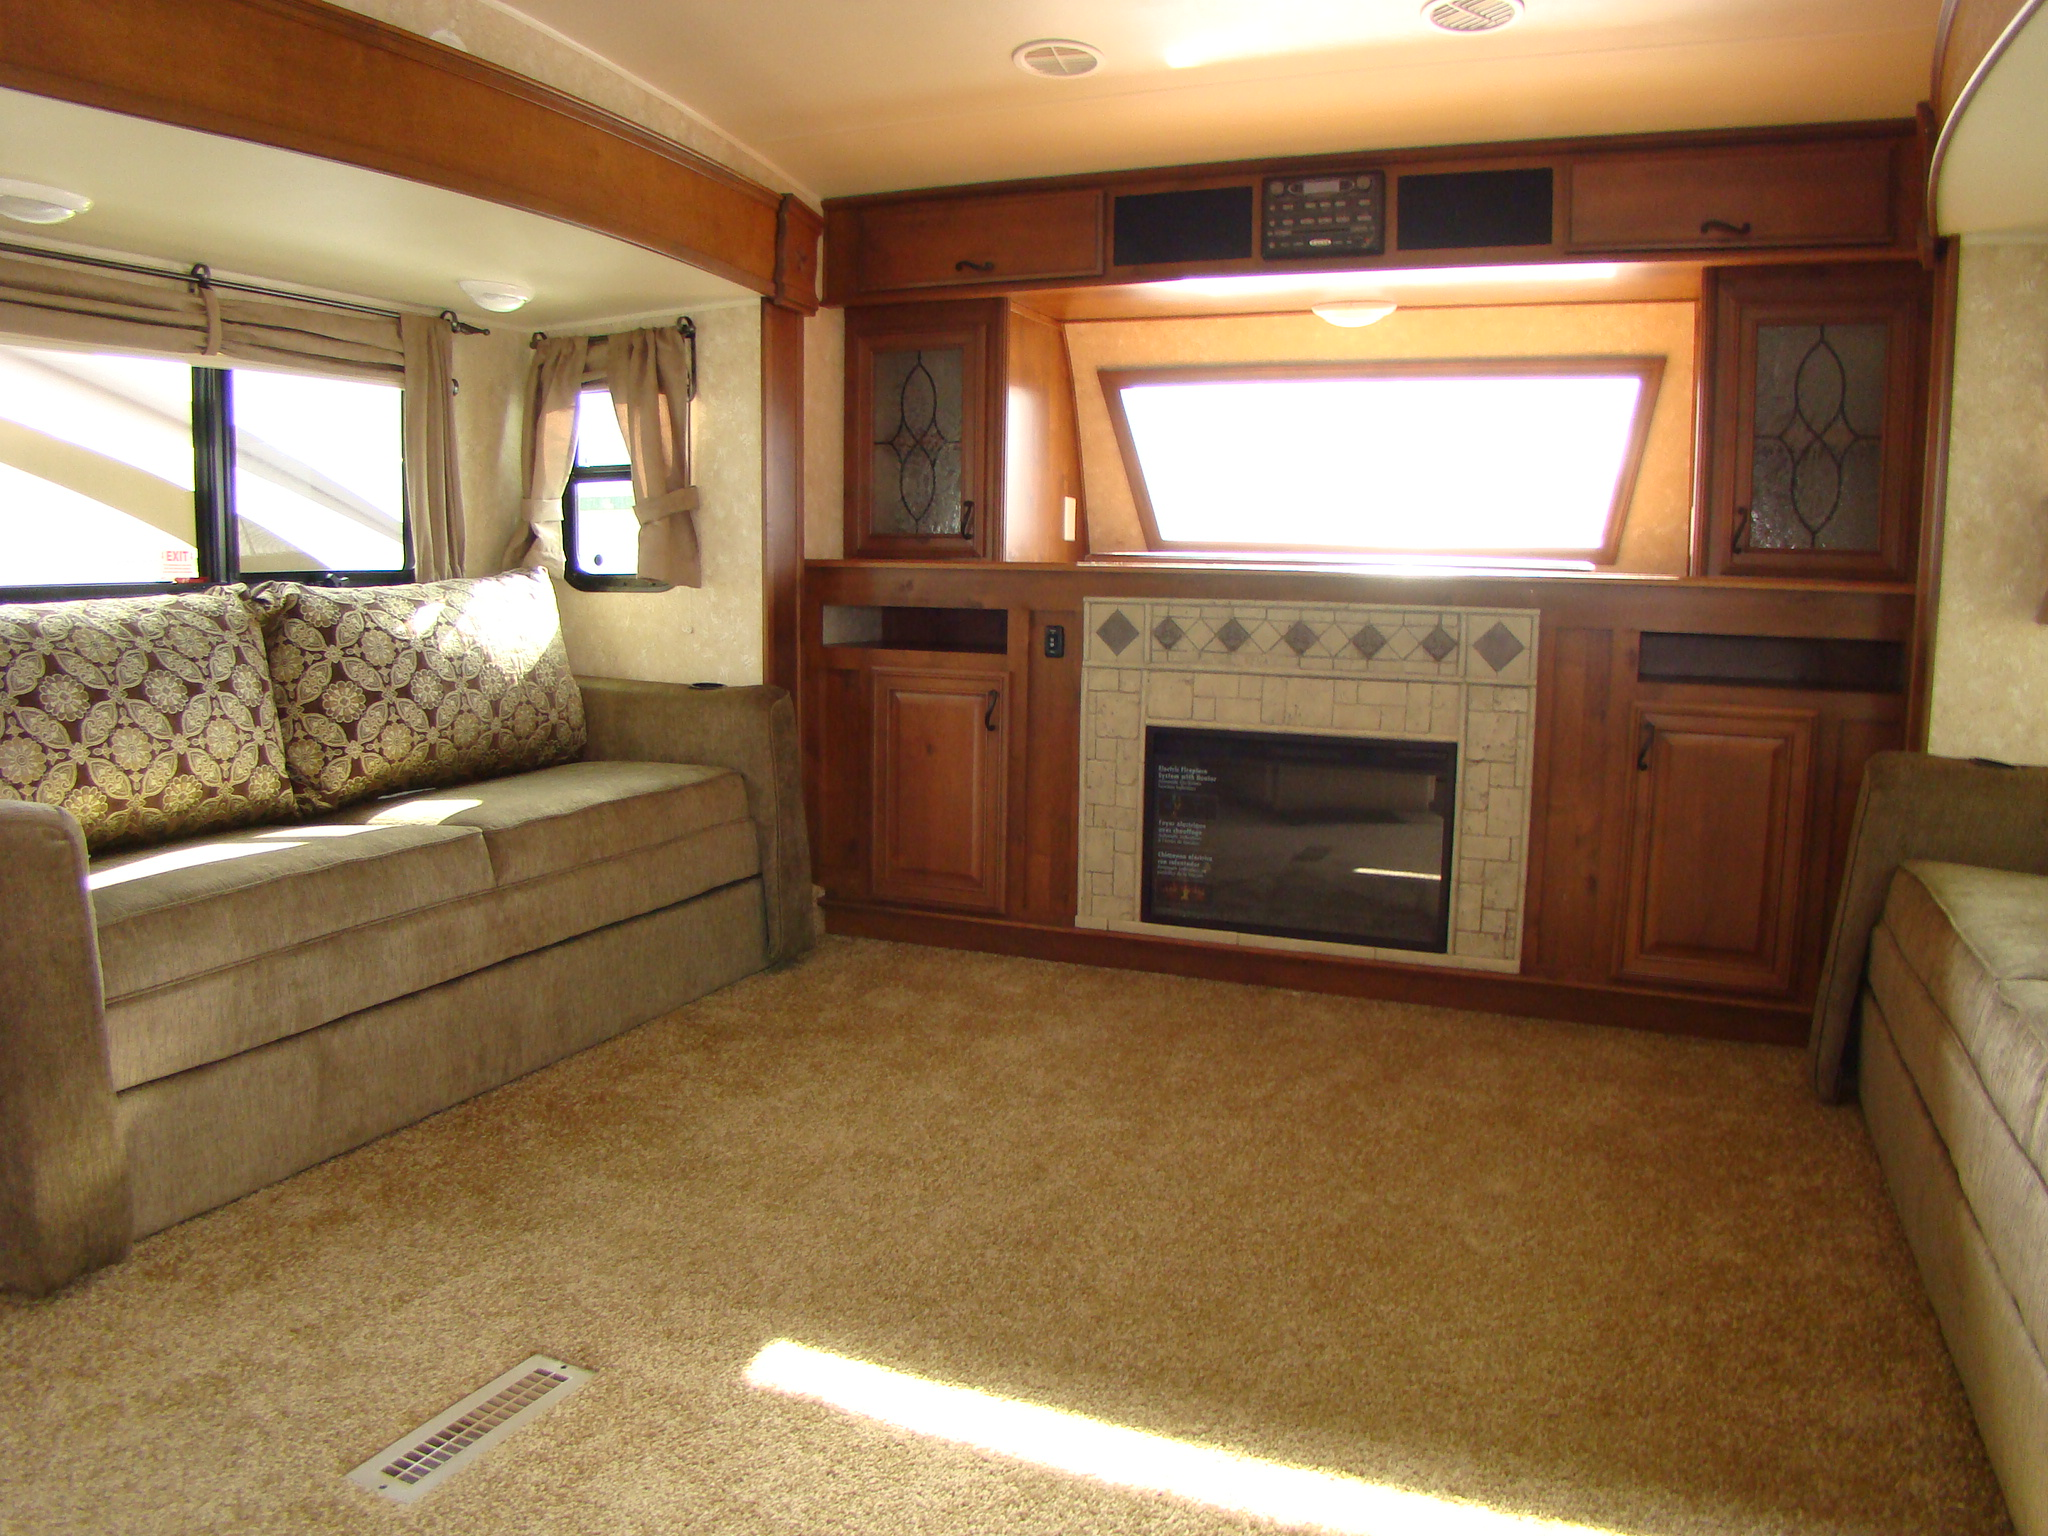 Wonderful Open Range 386 Flr, Front Living Room 5th Wheel, Rv Dealers Pennsylvania,  Lerch